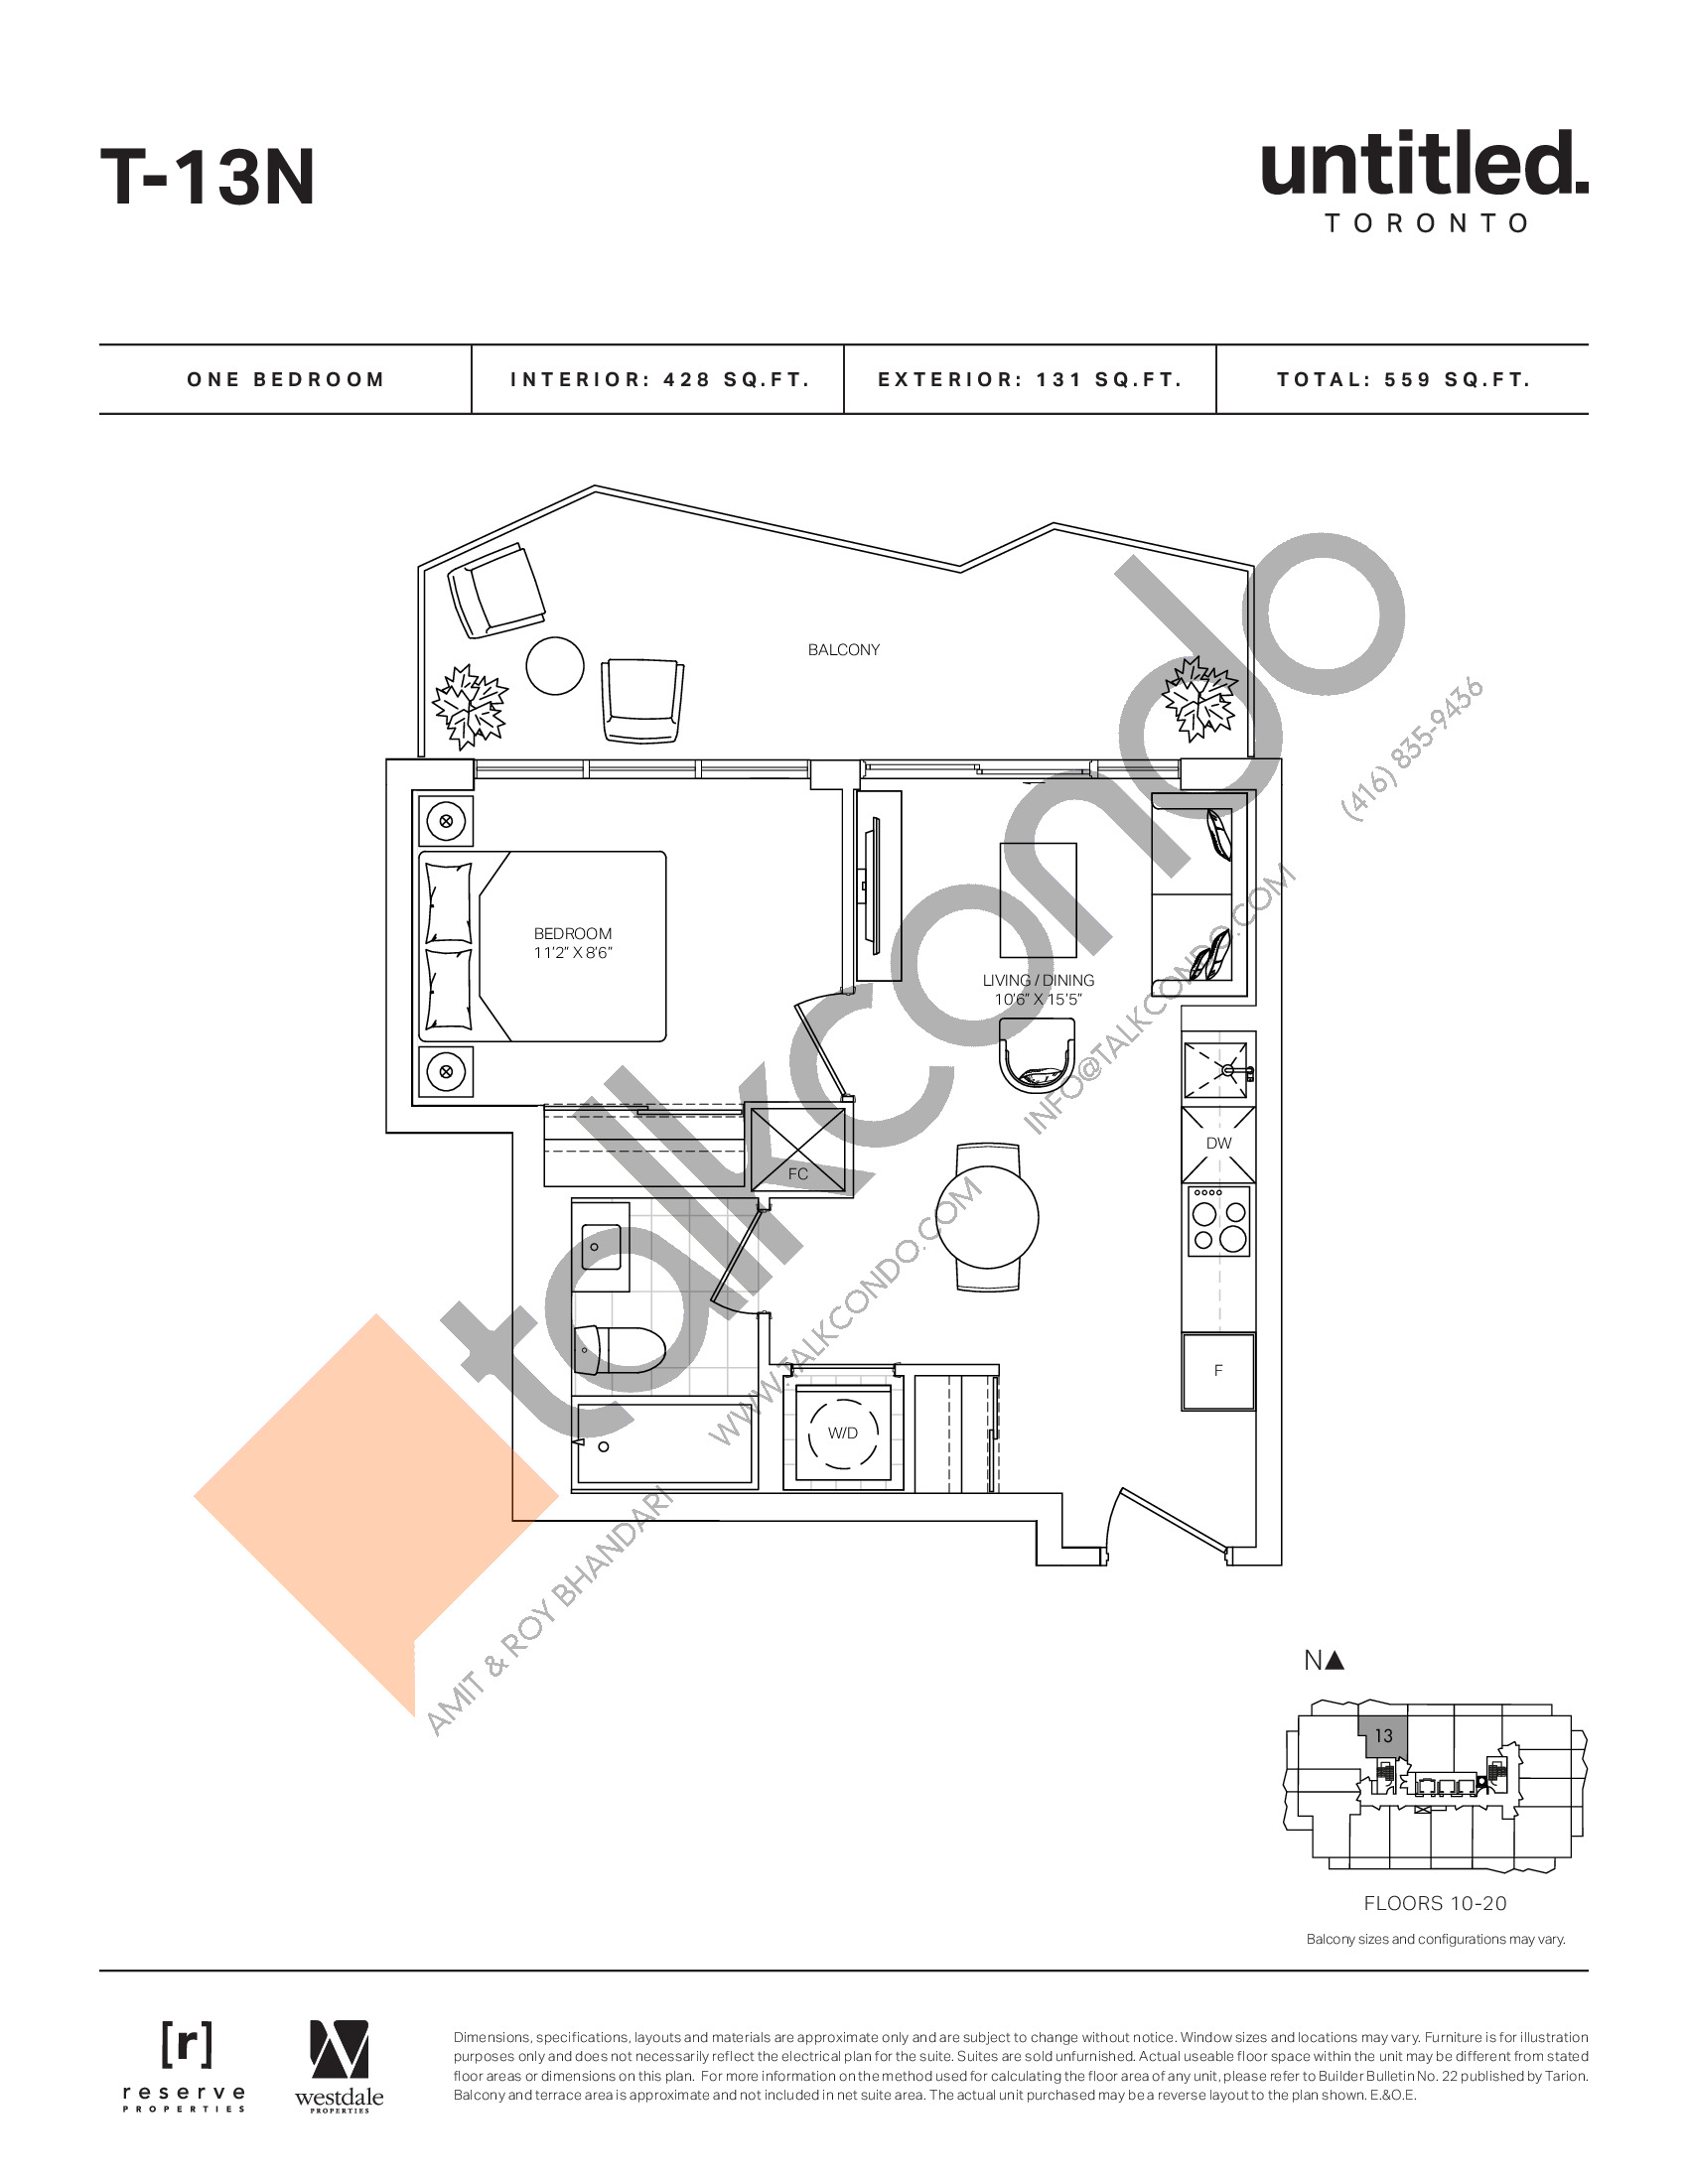 T-13N Floor Plan at Untitled North Tower Condos - 428 sq.ft